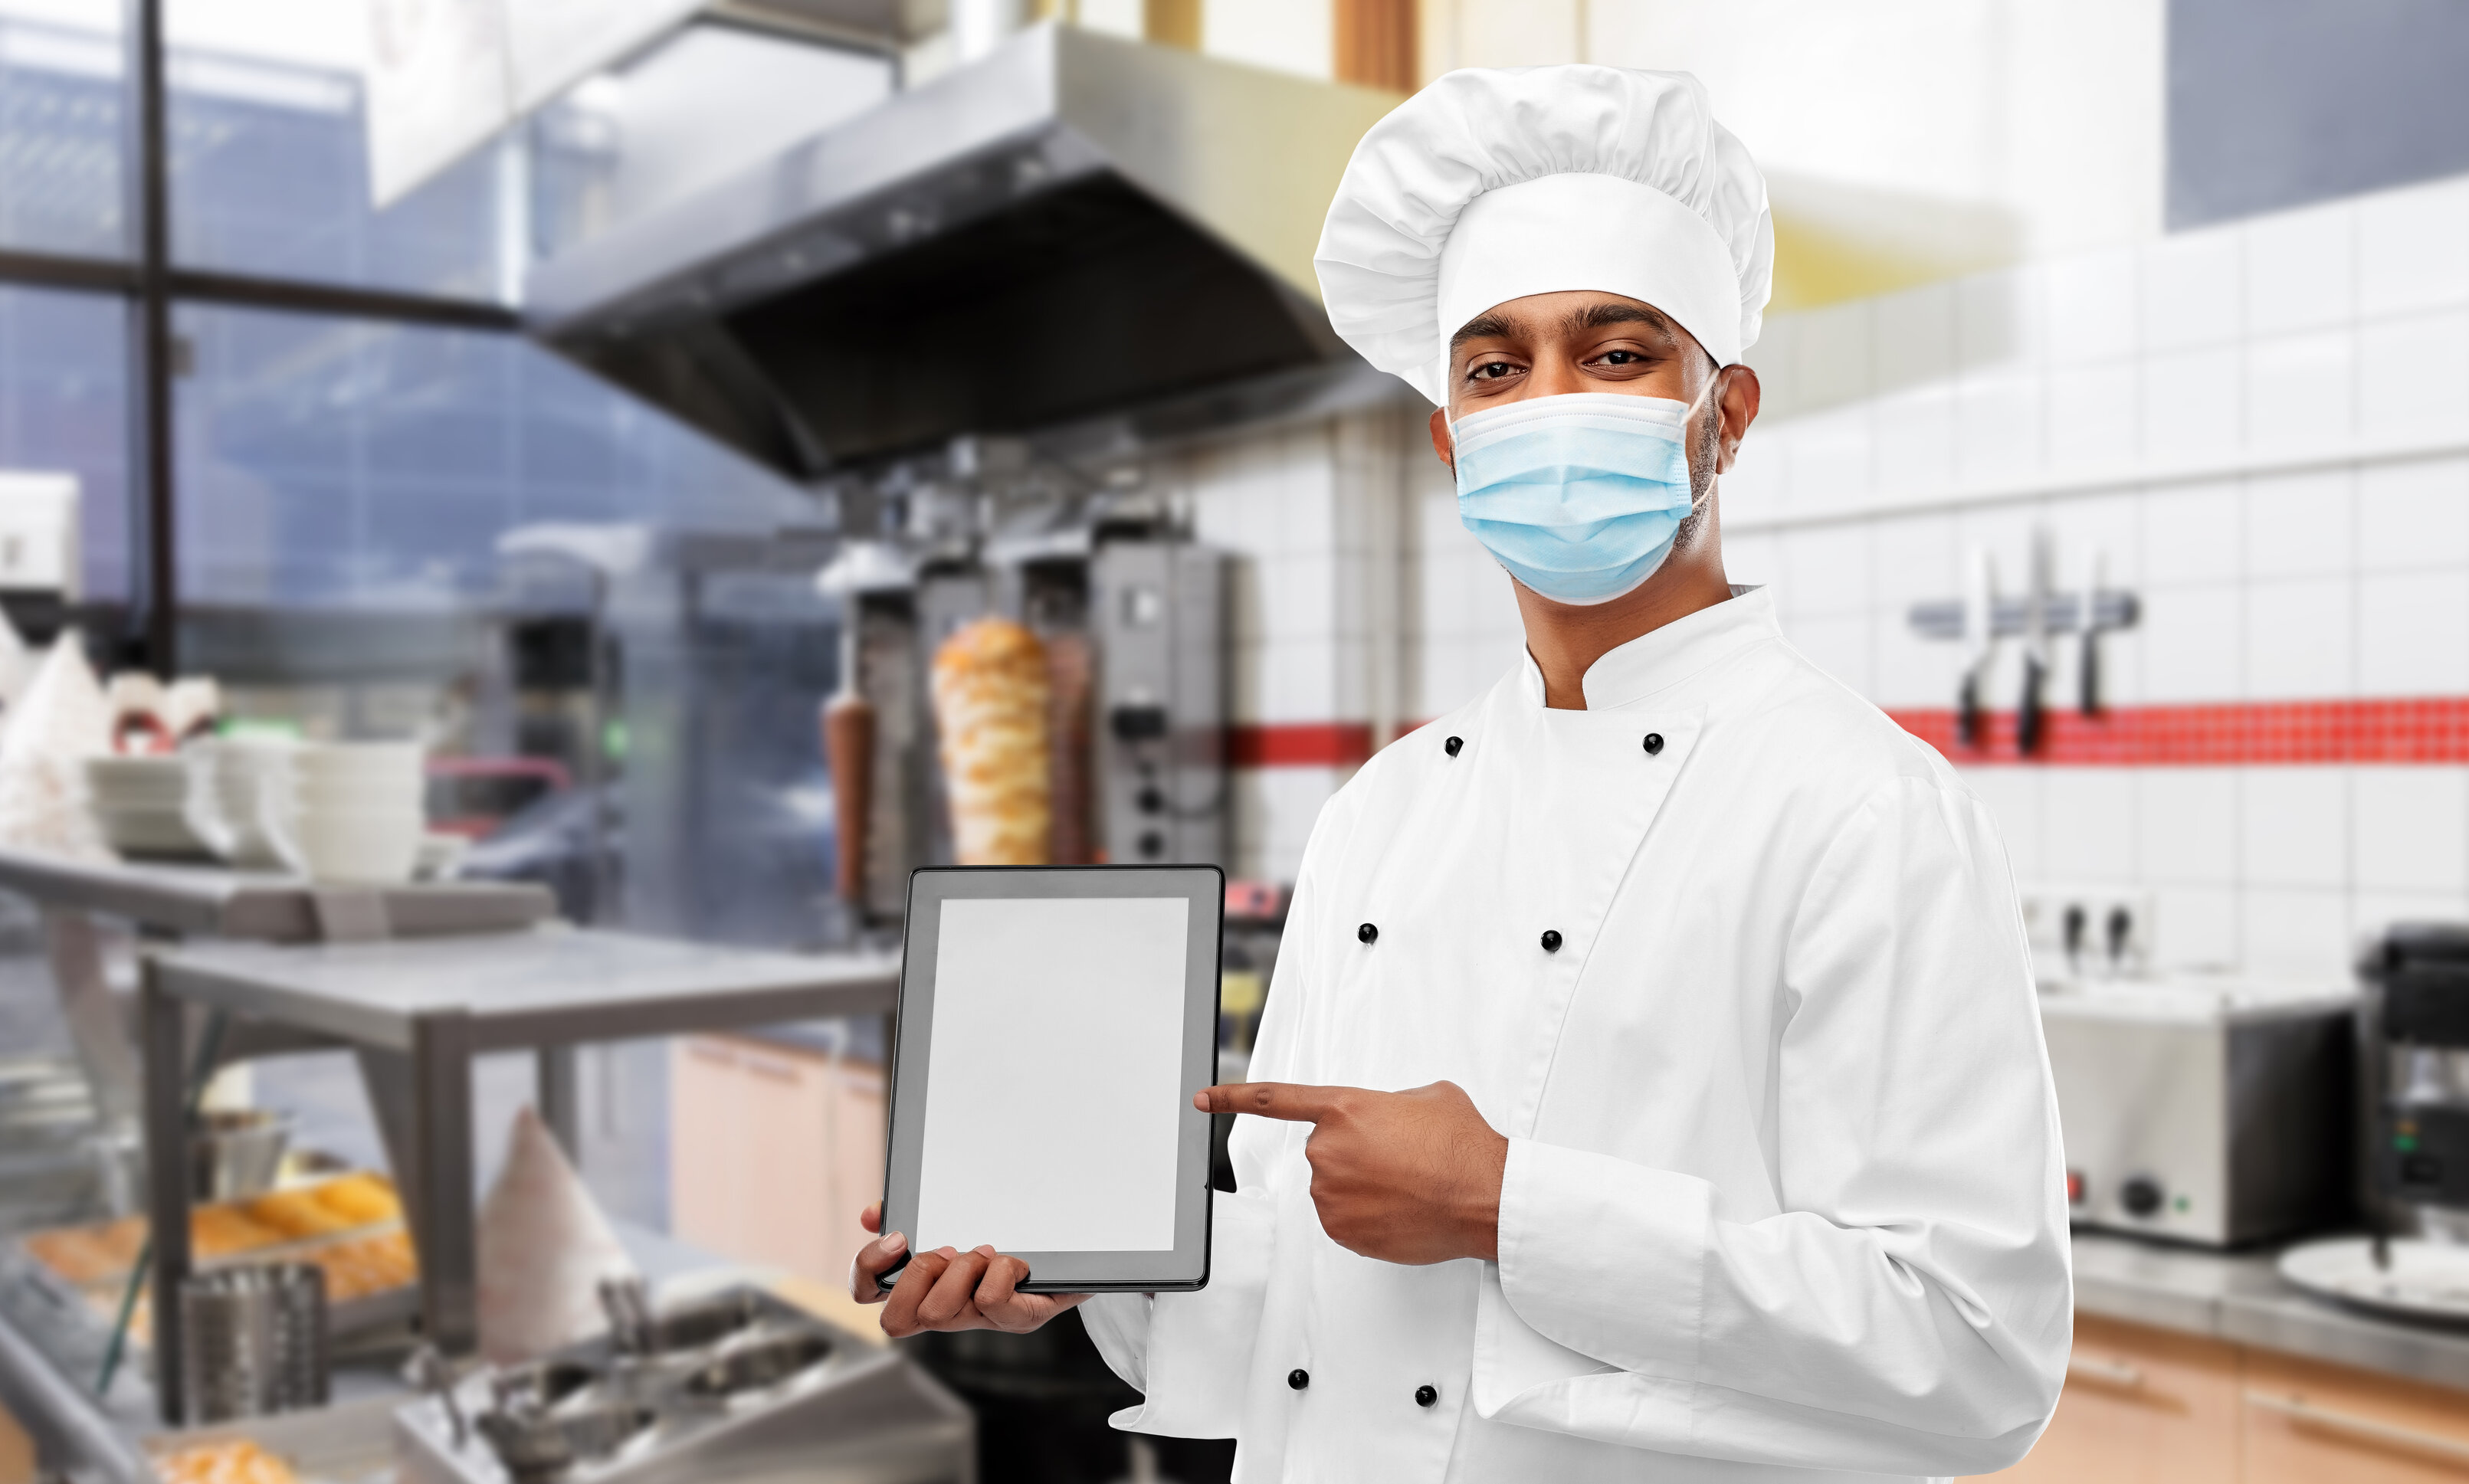 Environmental health and safety expert says care homes must adapt to digital food safety